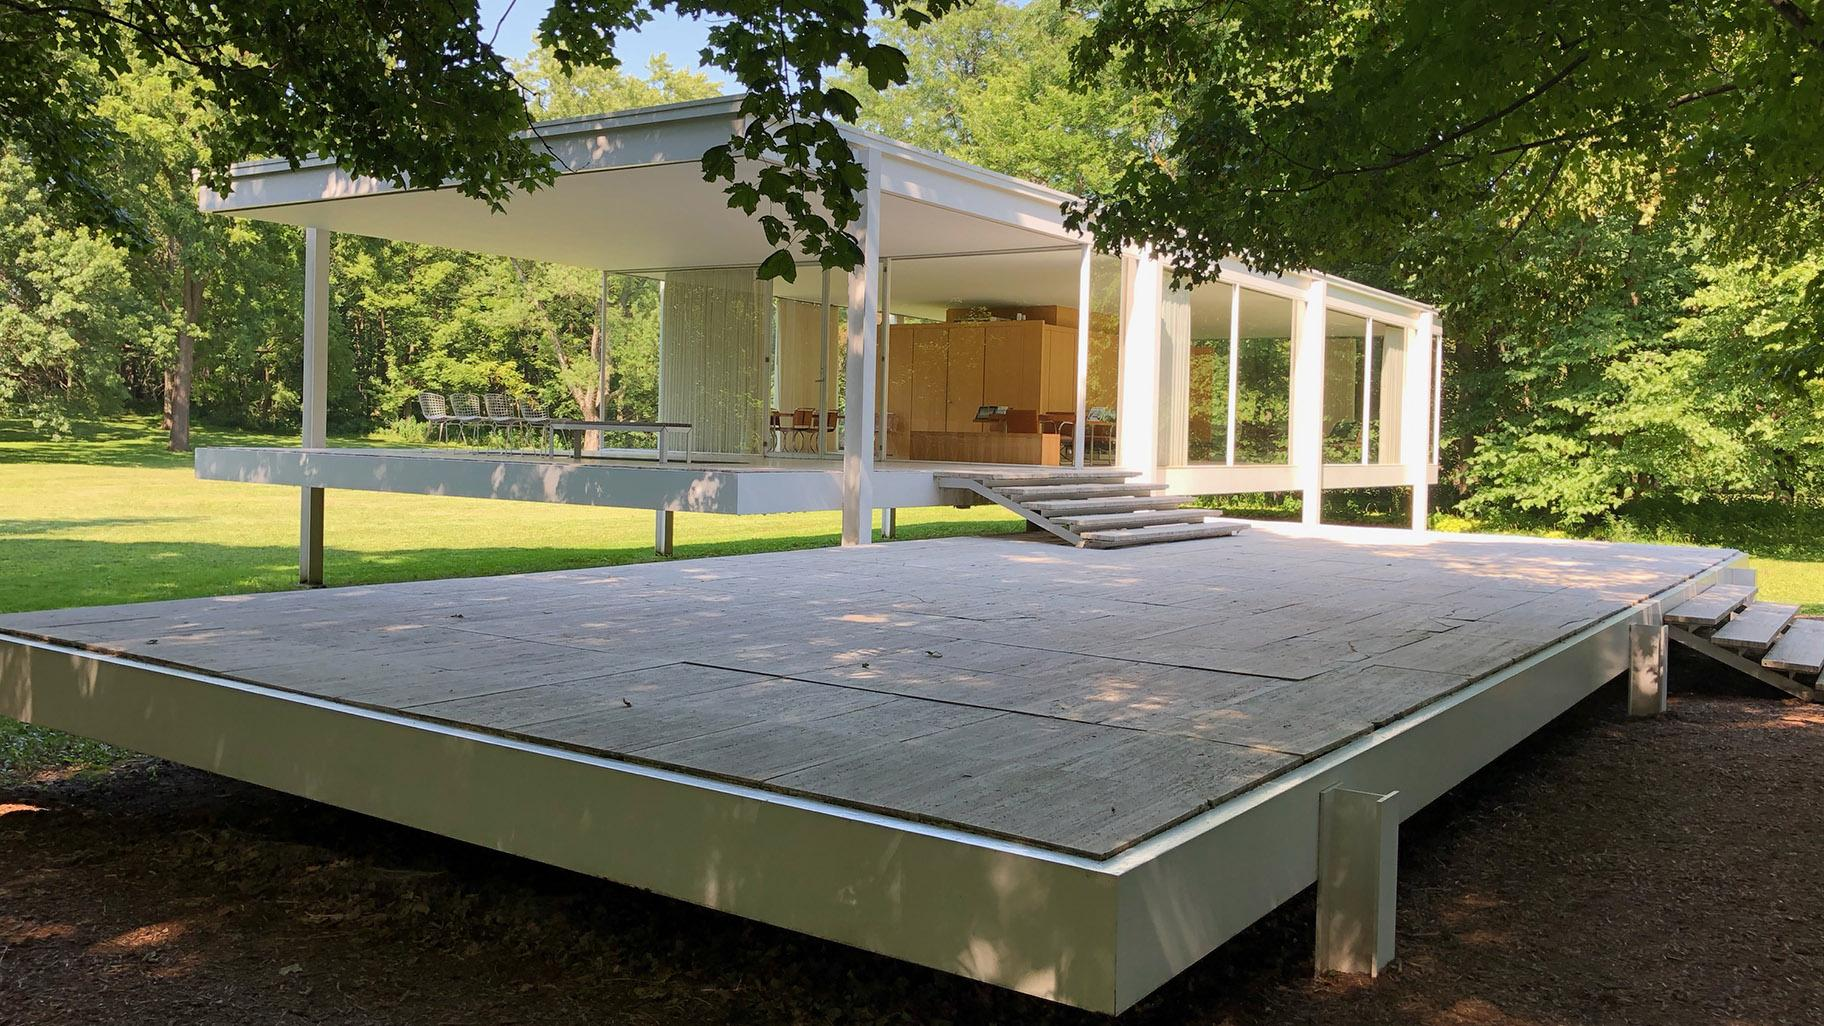 Ludwig Mies van der Rohe's Farnsworth House in Plano, Illinois.